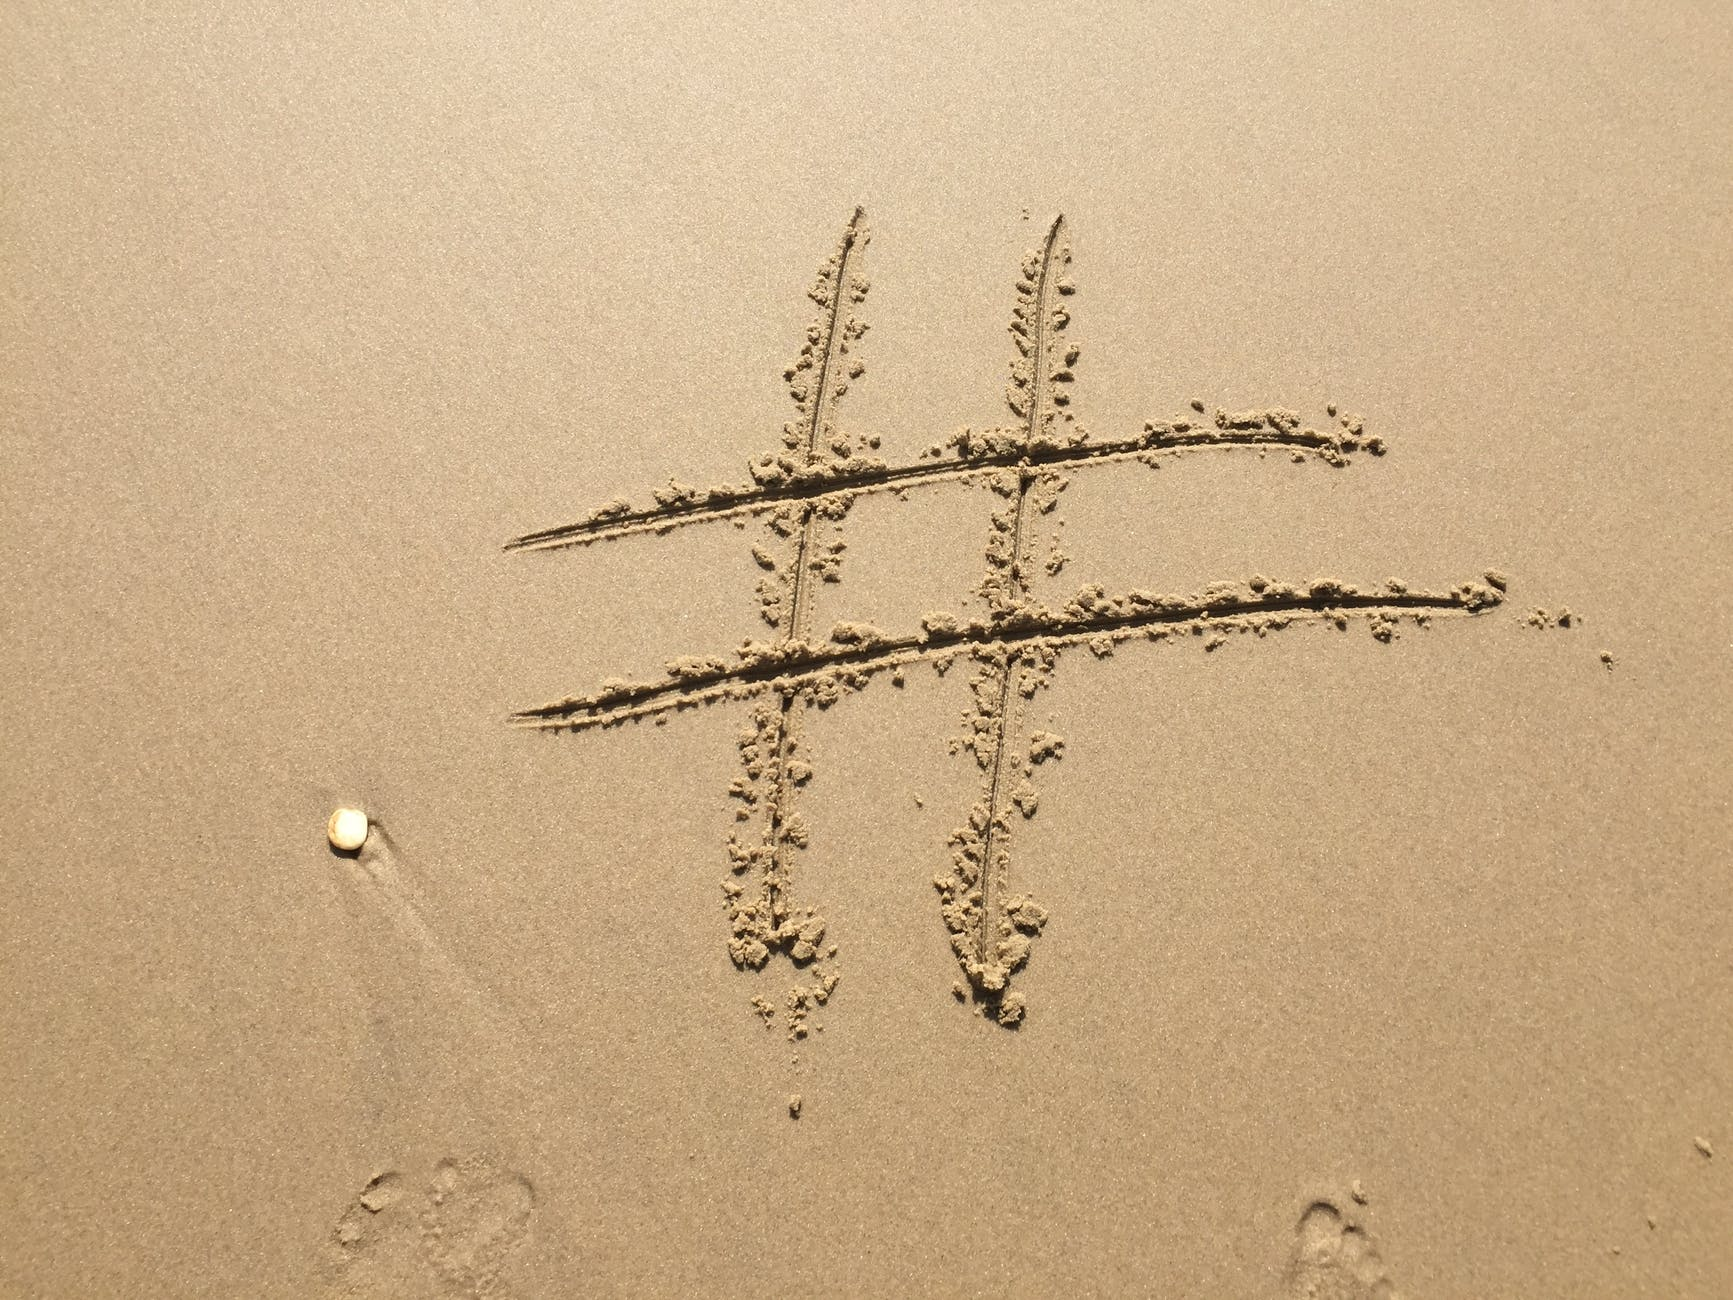 Hashtags – Why They Are Important and Why You Should Use Them